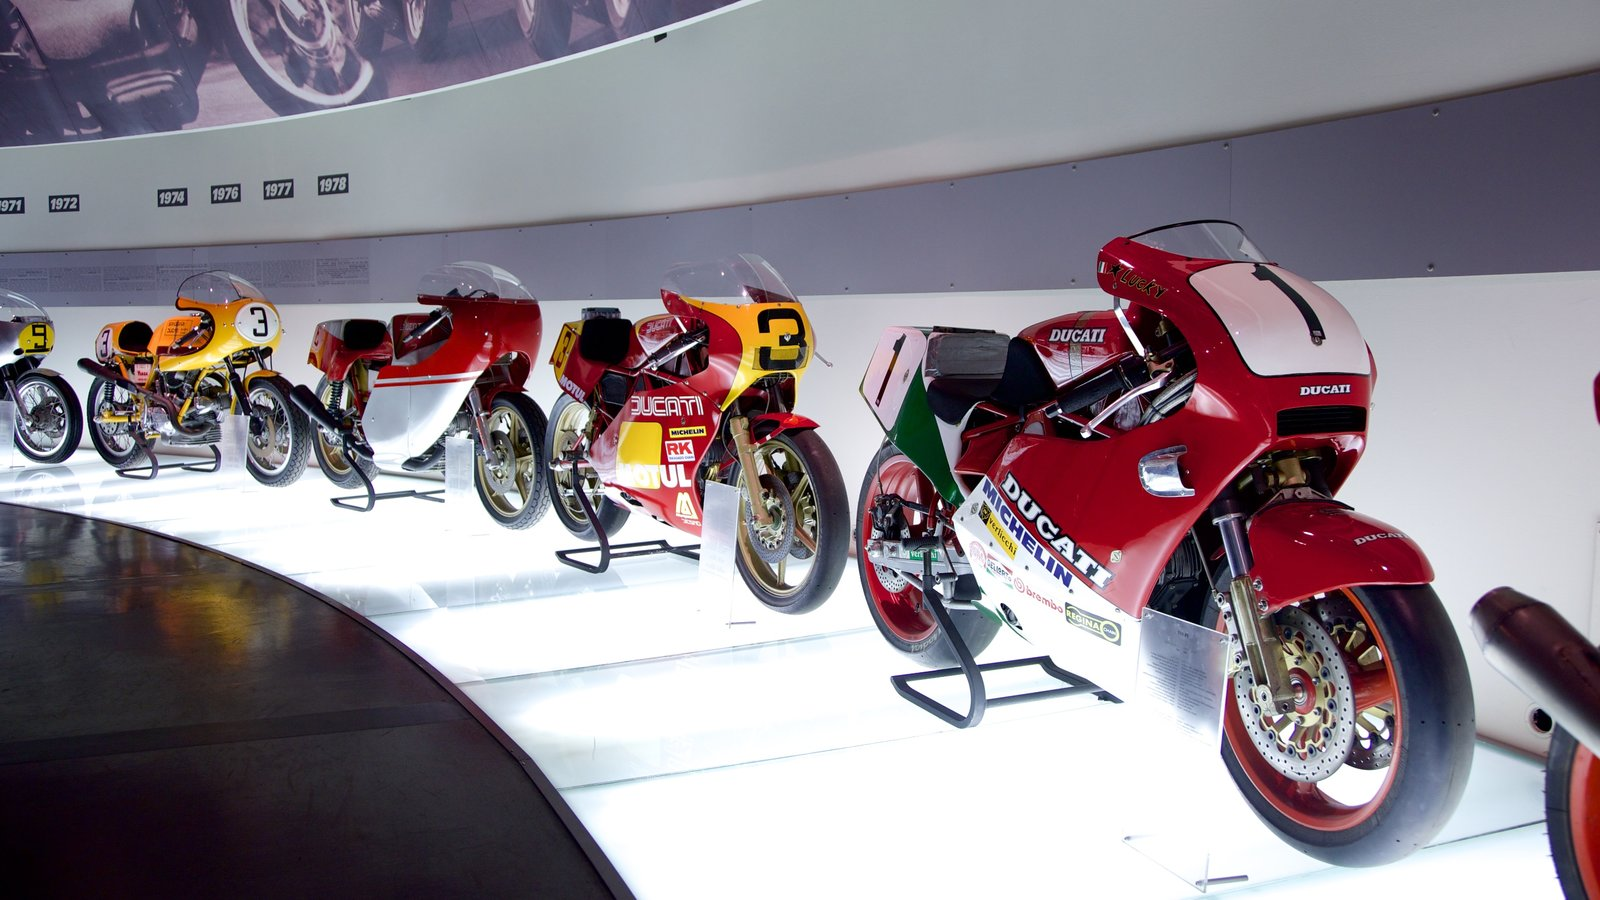 Ducati Museum which includes interior views